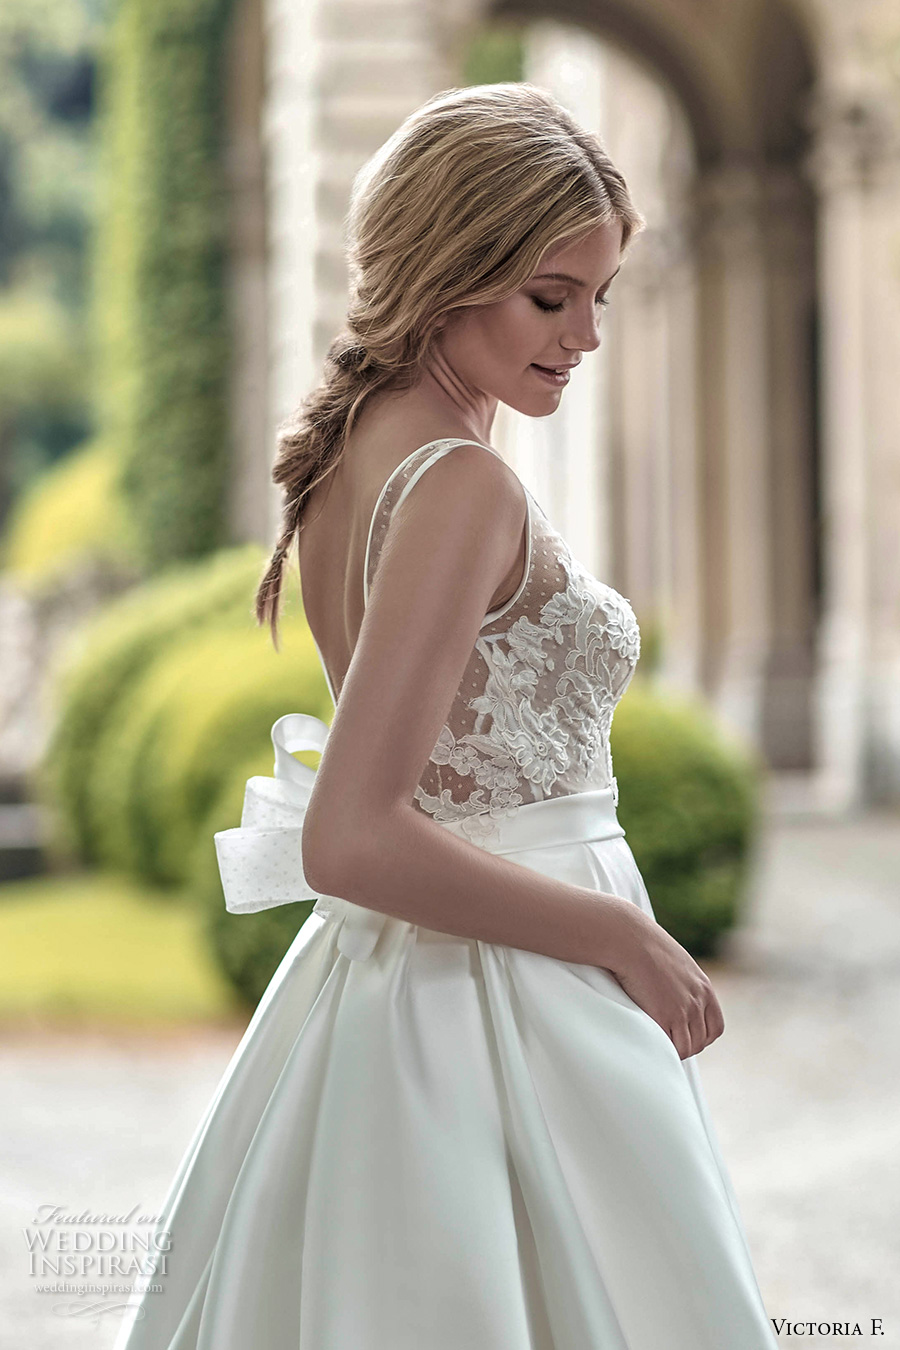 victoria f 2017 bridal lace strap heavily embellished bodice a  line wedding dress (untitled 04) sdv